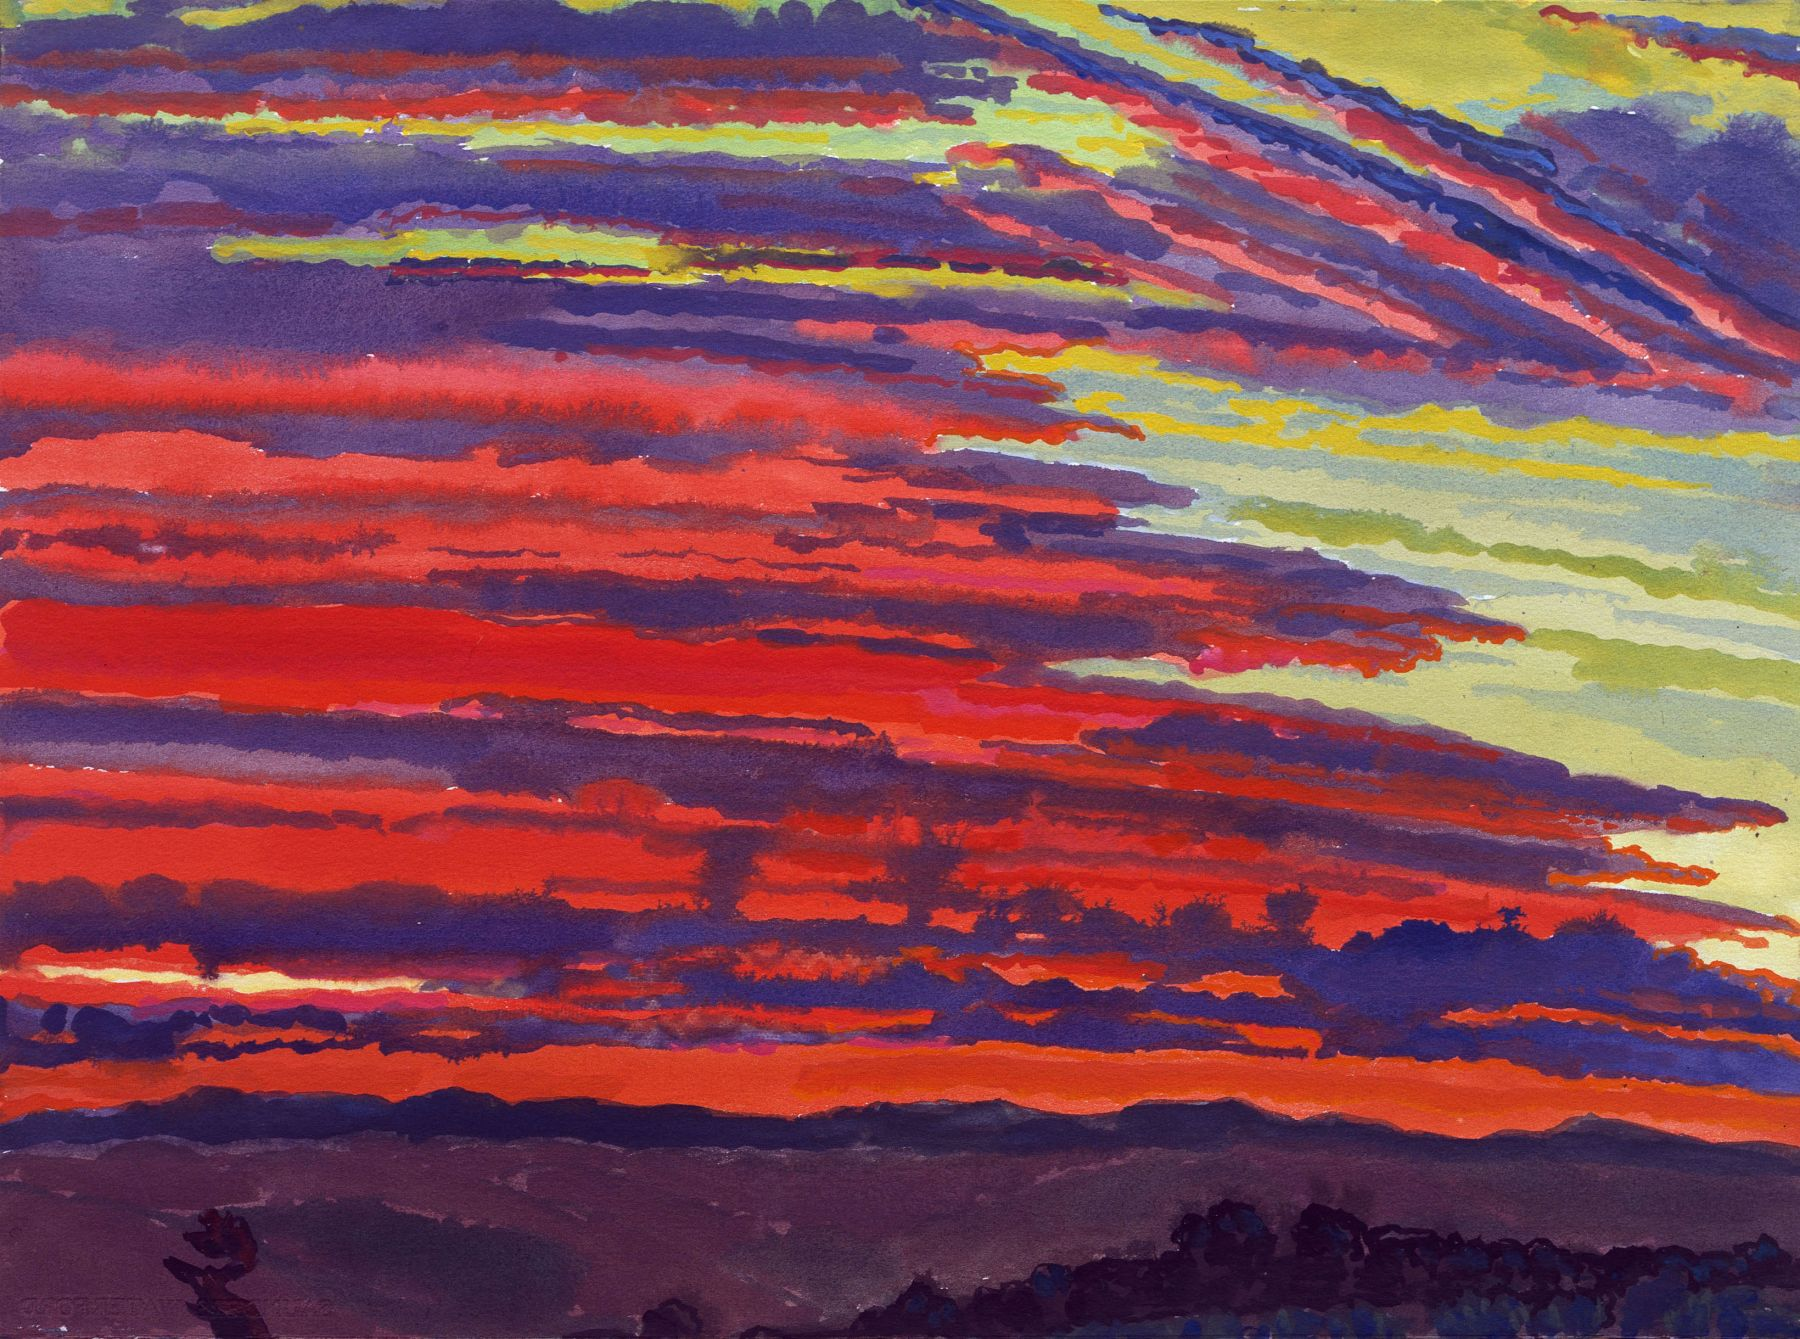 Graham Nickson,   Sarageto Dawn: Red Sky, Last Day, 2007    Watercolor on paper 22 x 30 inches